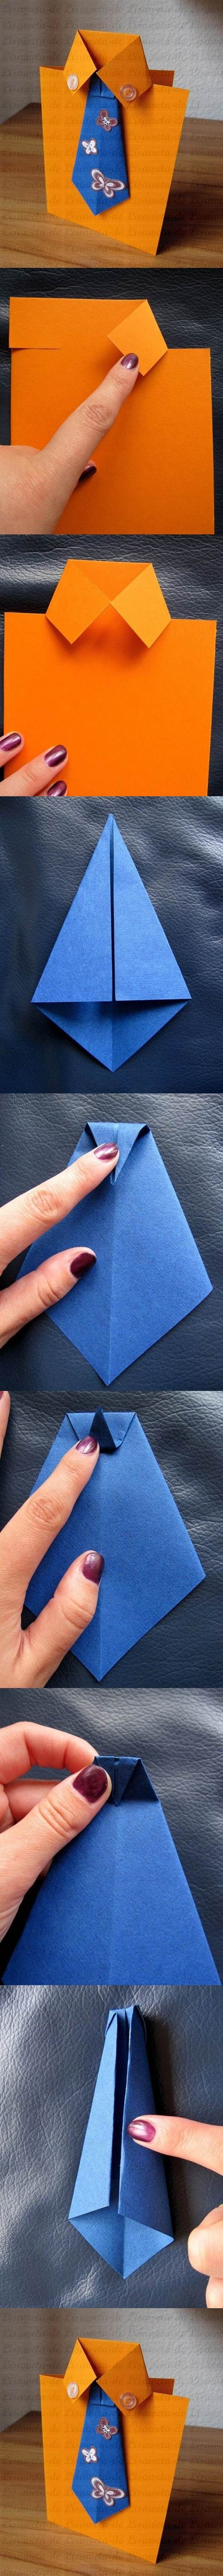 DIY Tie and Shirt Greeting Card | iCreativeIdeas.com Like Us on Facebook…